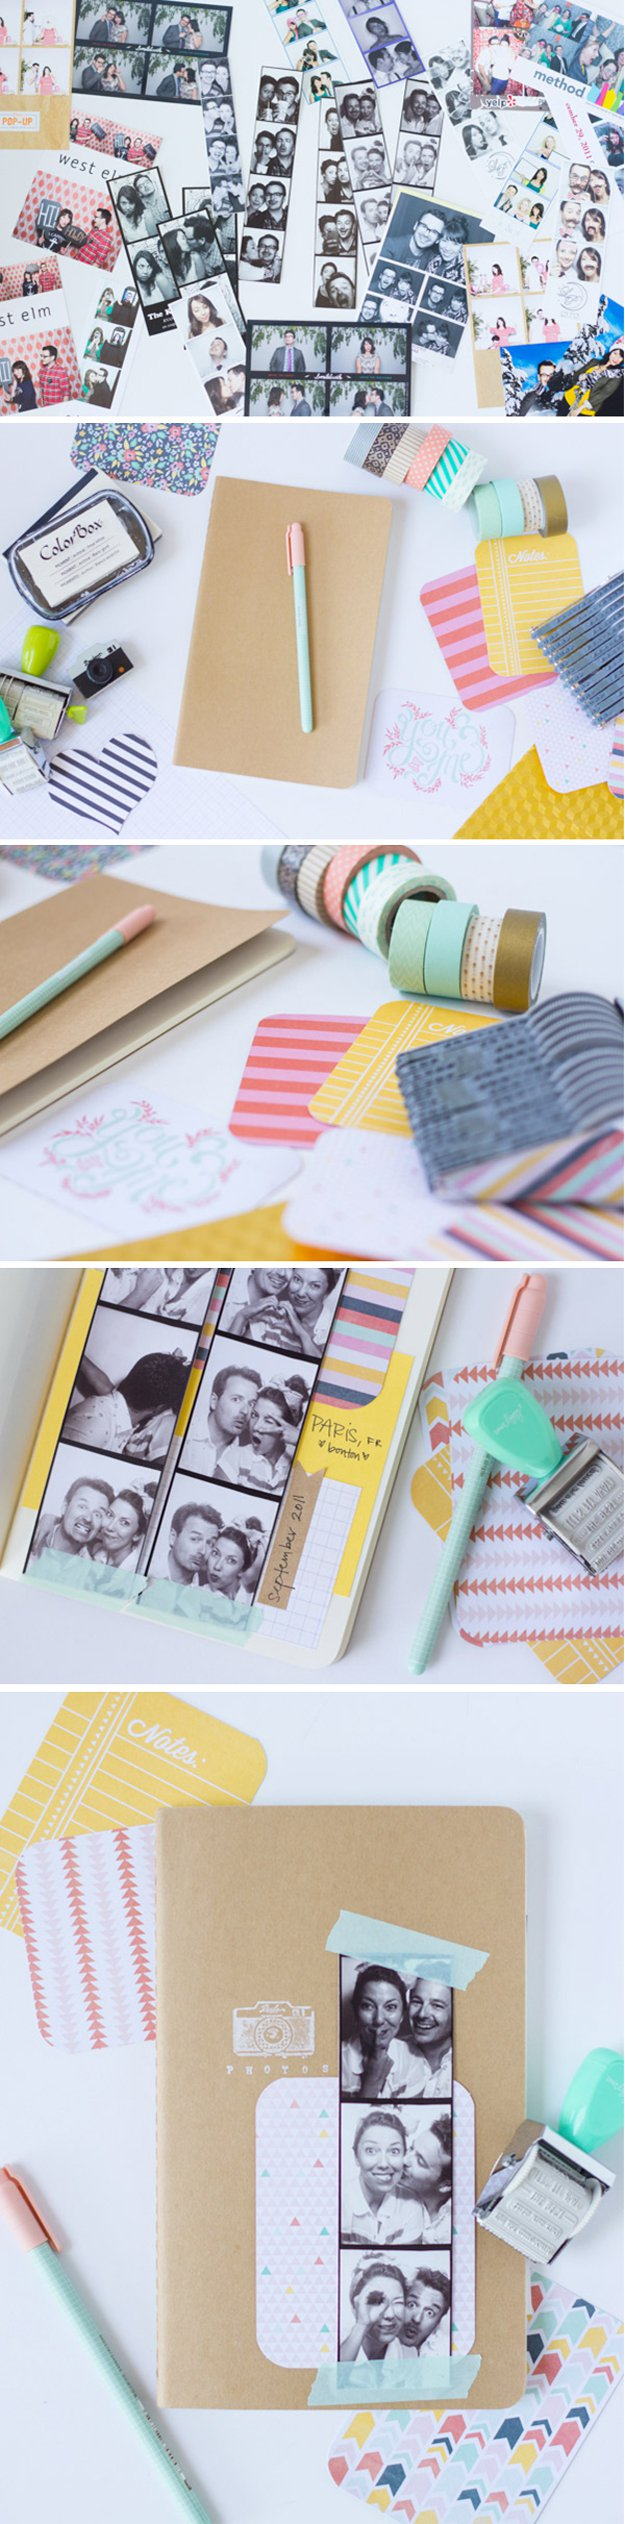 Washi Tape Crafts - DIY Photobooth Strip Scrapbook - Wall Art, Frames, Cards, Pencils, Room Decor and DIY Gifts, Back To School Supplies - Creative, Fun Craft Ideas for Teens, Tweens and Teenagers - Step by Step Tutorials and Instructions http://diyprojectsforteens.com/washi-tape-crafts